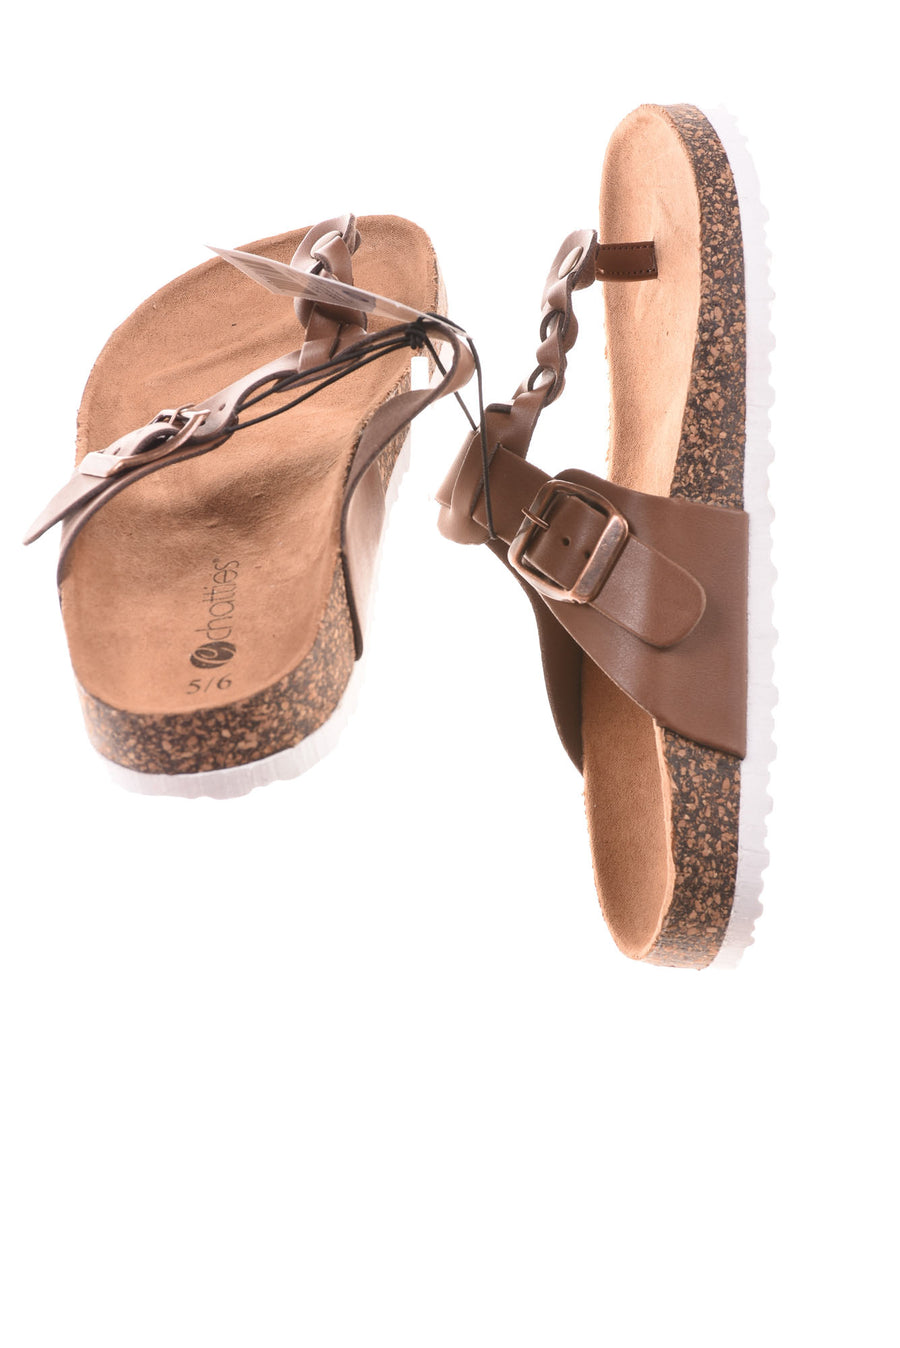 NEW Chatties Women's Shoes 5/6 Brown